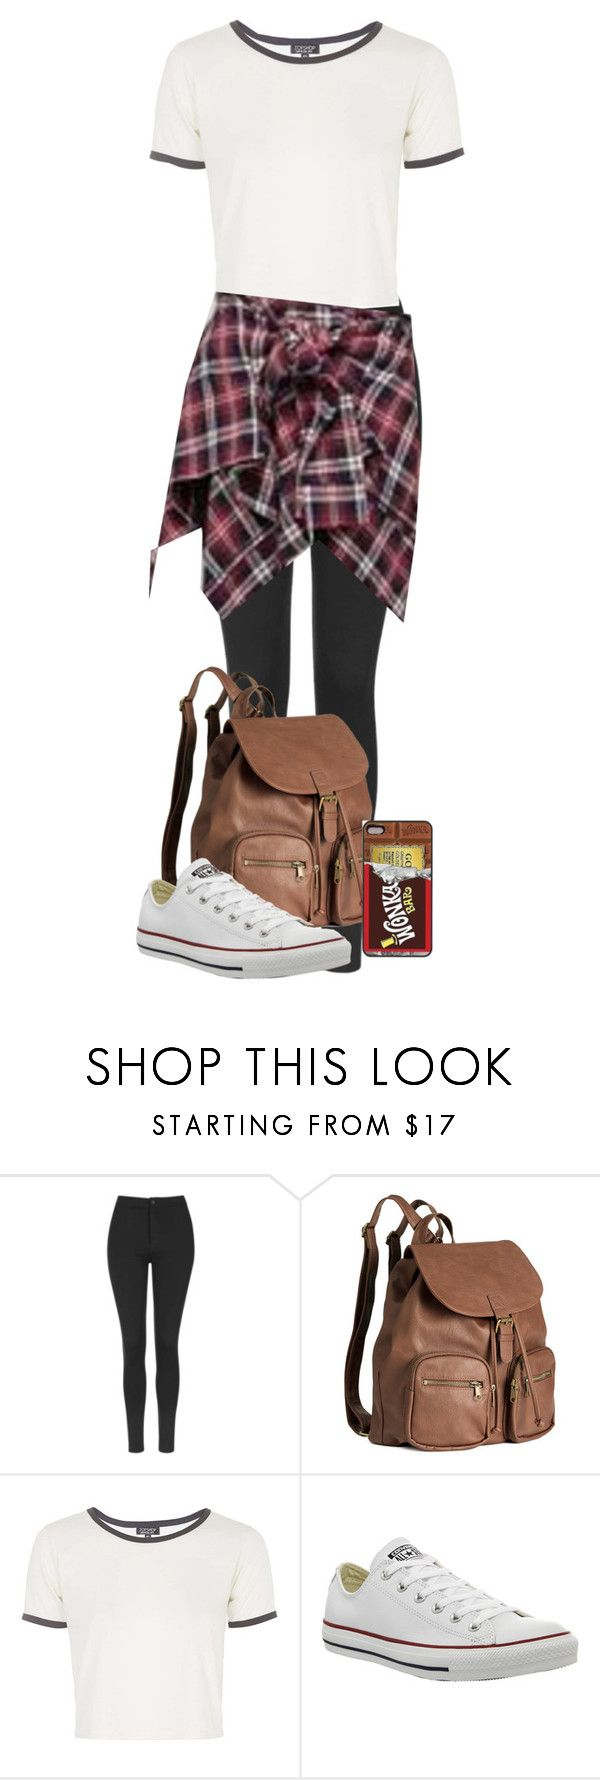 """untitled 38"" by caro3302 ❤ liked on Polyvore featuring Topshop, H&M, Disney, Converse, Cutie Fashion, women's clothing, women's fashion, women, female and woman"